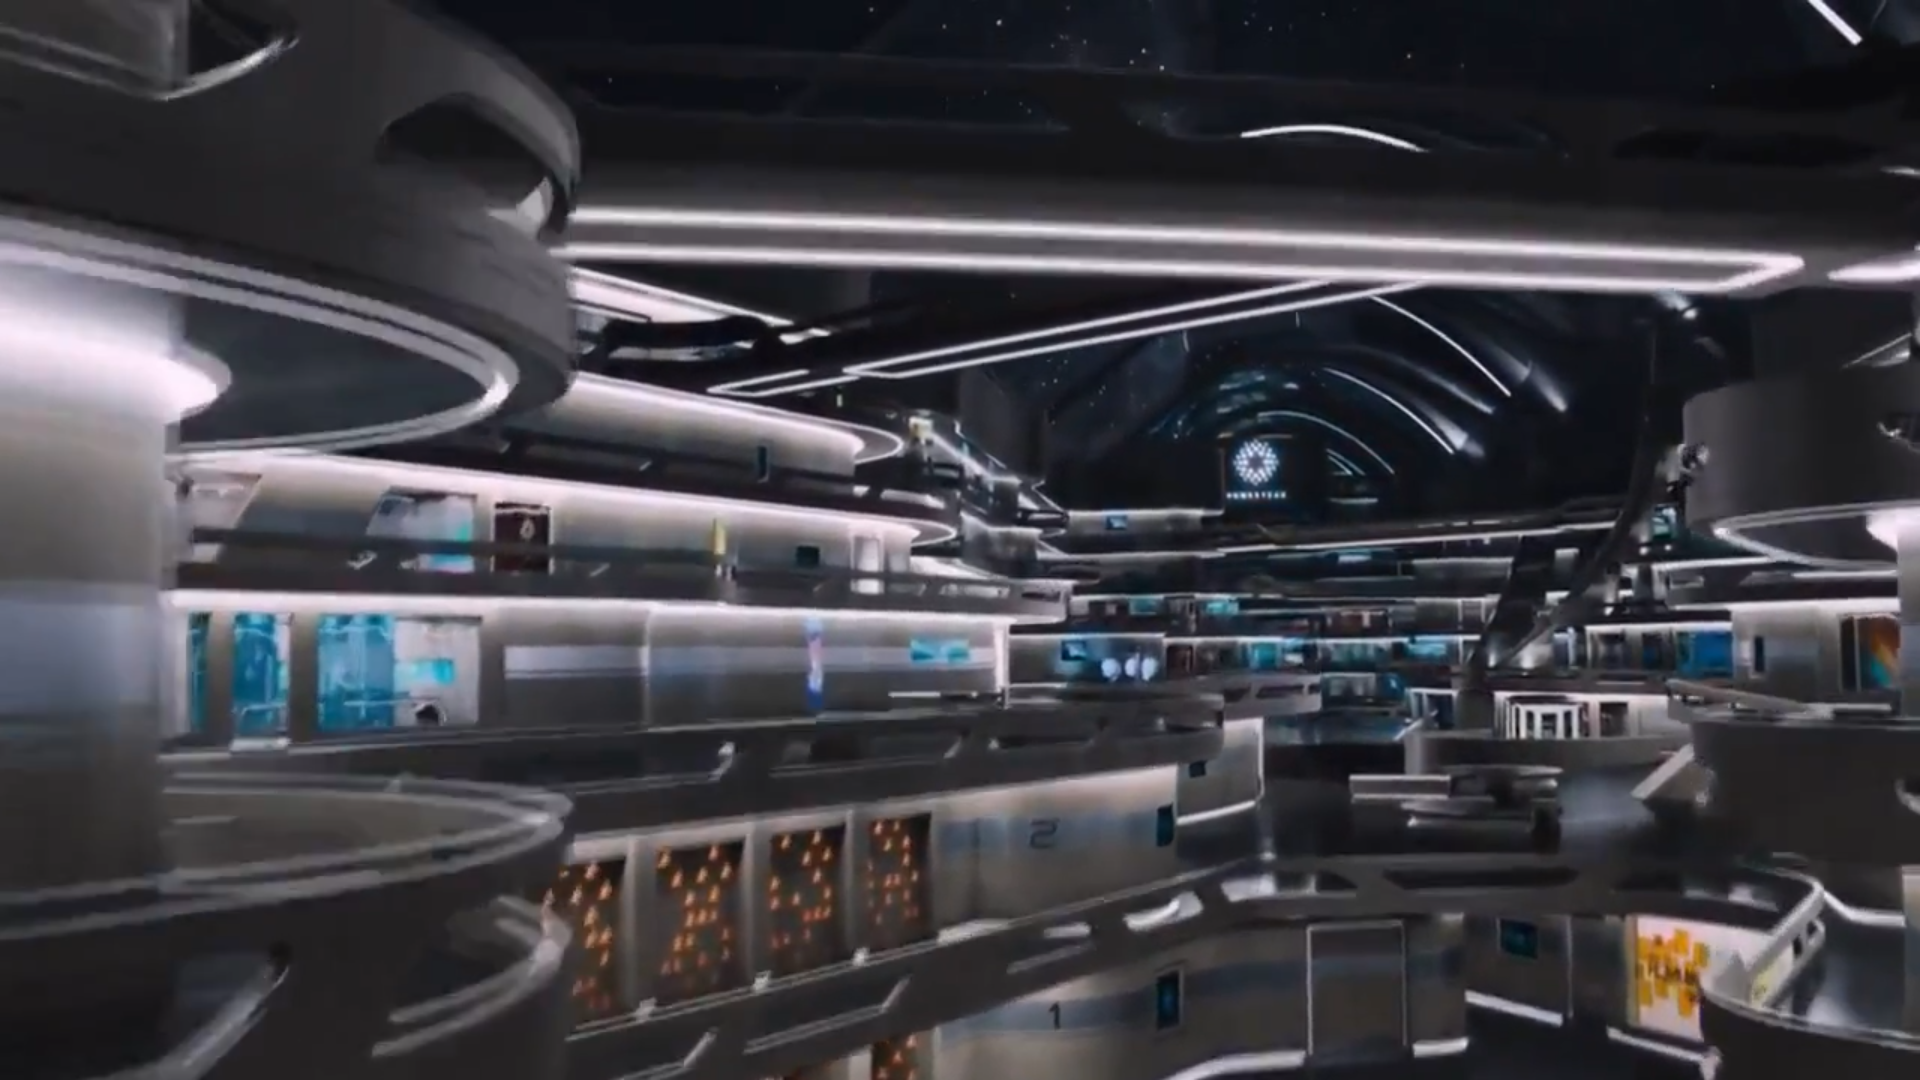 The furniture lost in space and time with passengers for Passengers spaceship